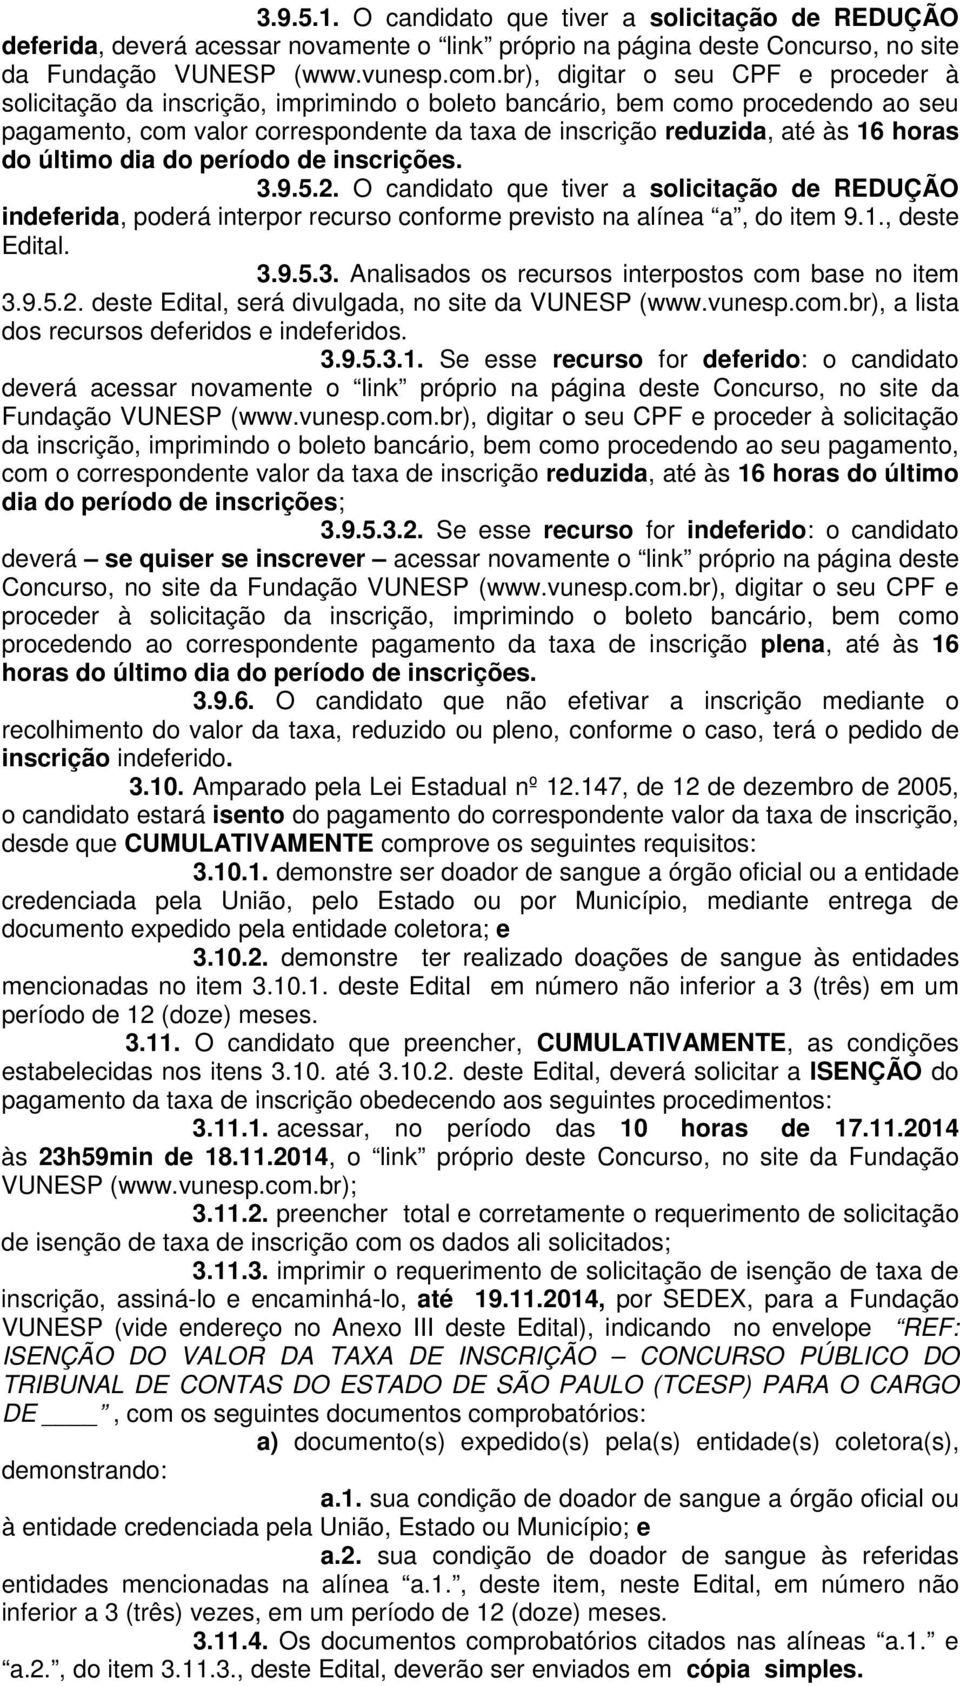 horas do último dia do período de inscrições. 3.9.5.2. O candidato que tiver a solicitação de REDUÇÃO indeferida, poderá interpor recurso conforme previsto na alínea a, do item 9.1., deste Edital. 3.9.5.3. Analisados os recursos interpostos com base no item 3.